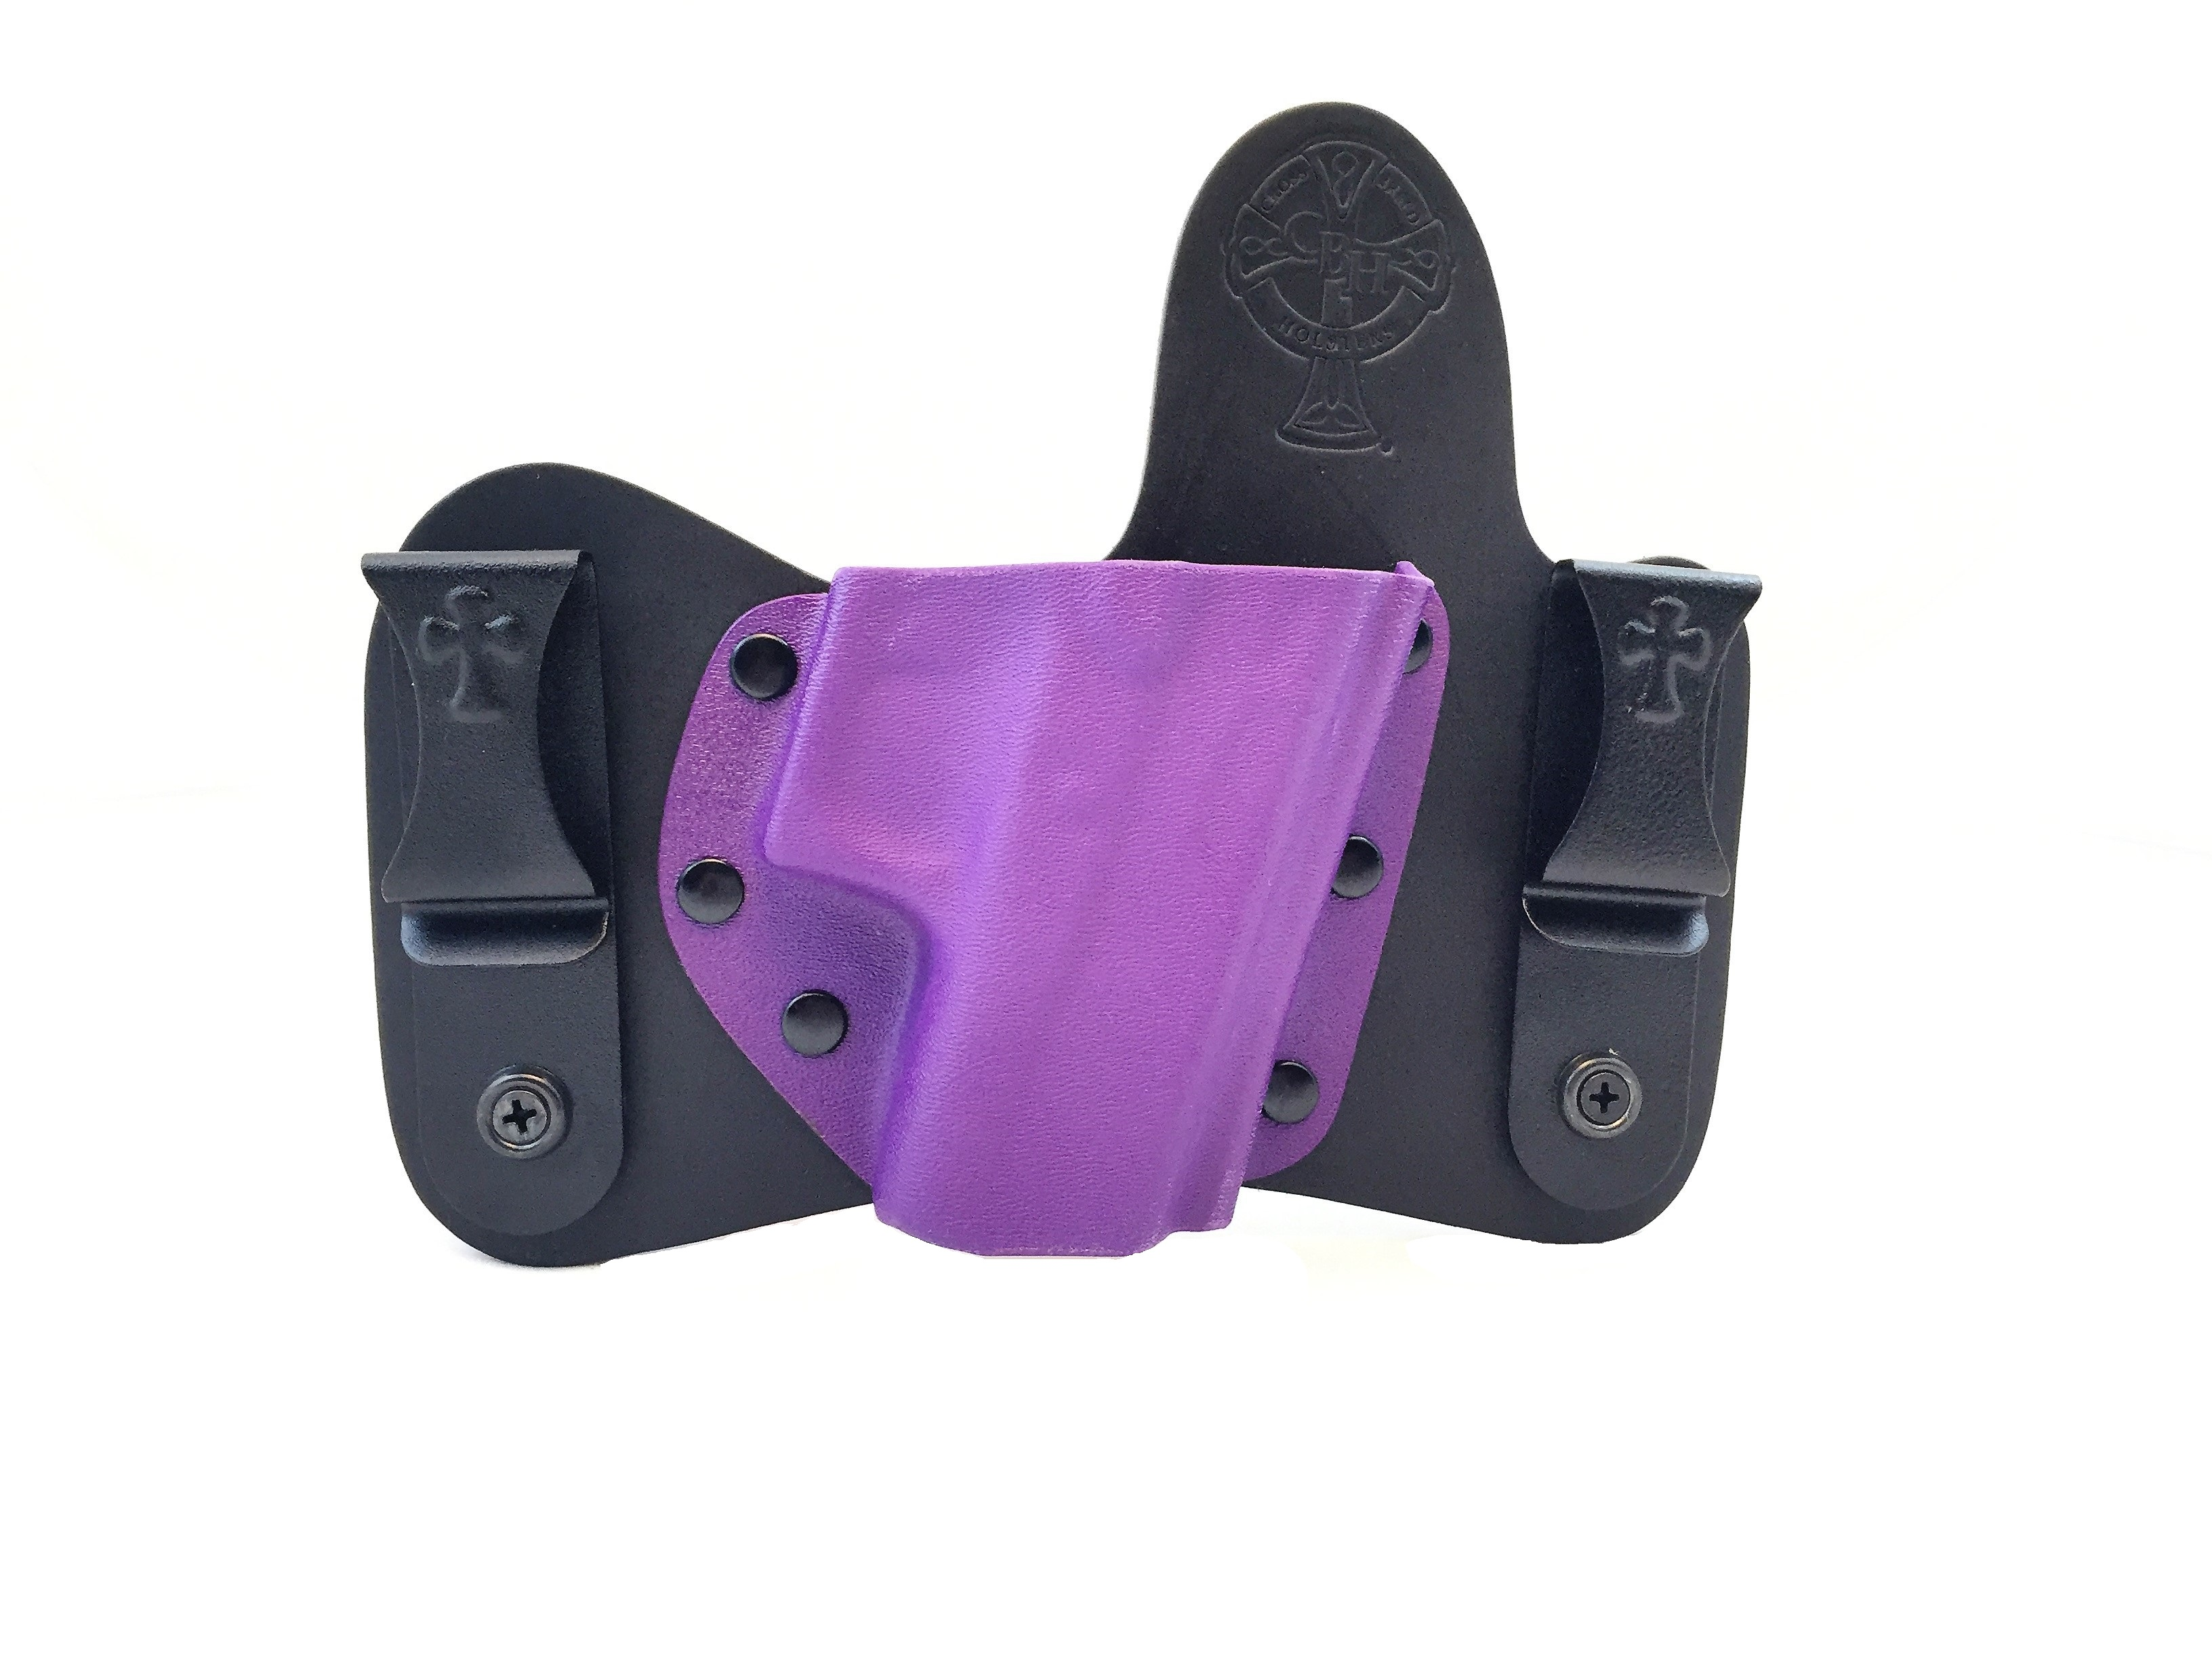 IWB Crossbreed TWAW holster